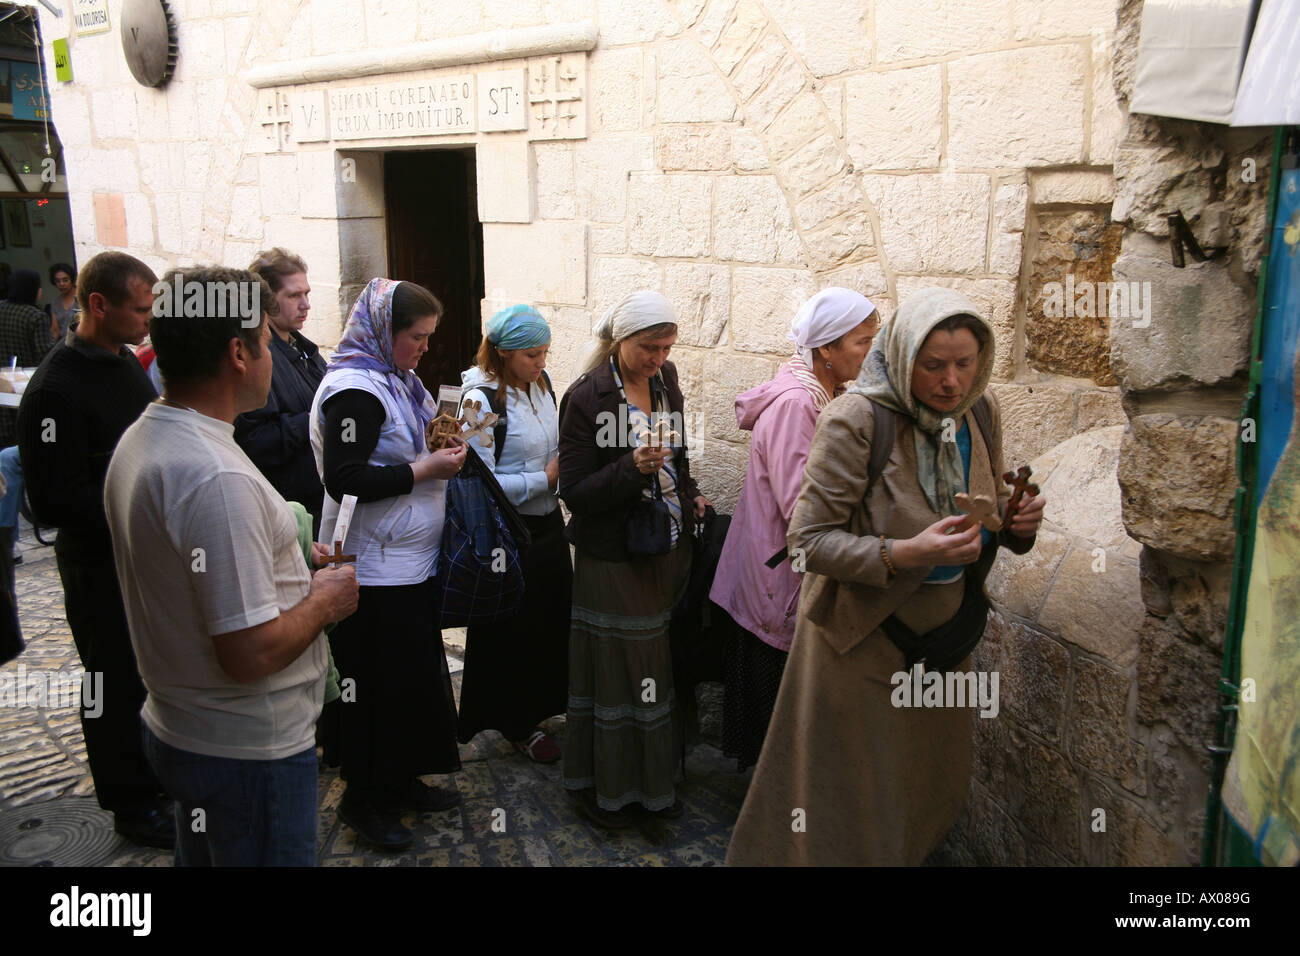 People walk along the Via Dolorosa in the old city section of Jerusalem - Stock Image